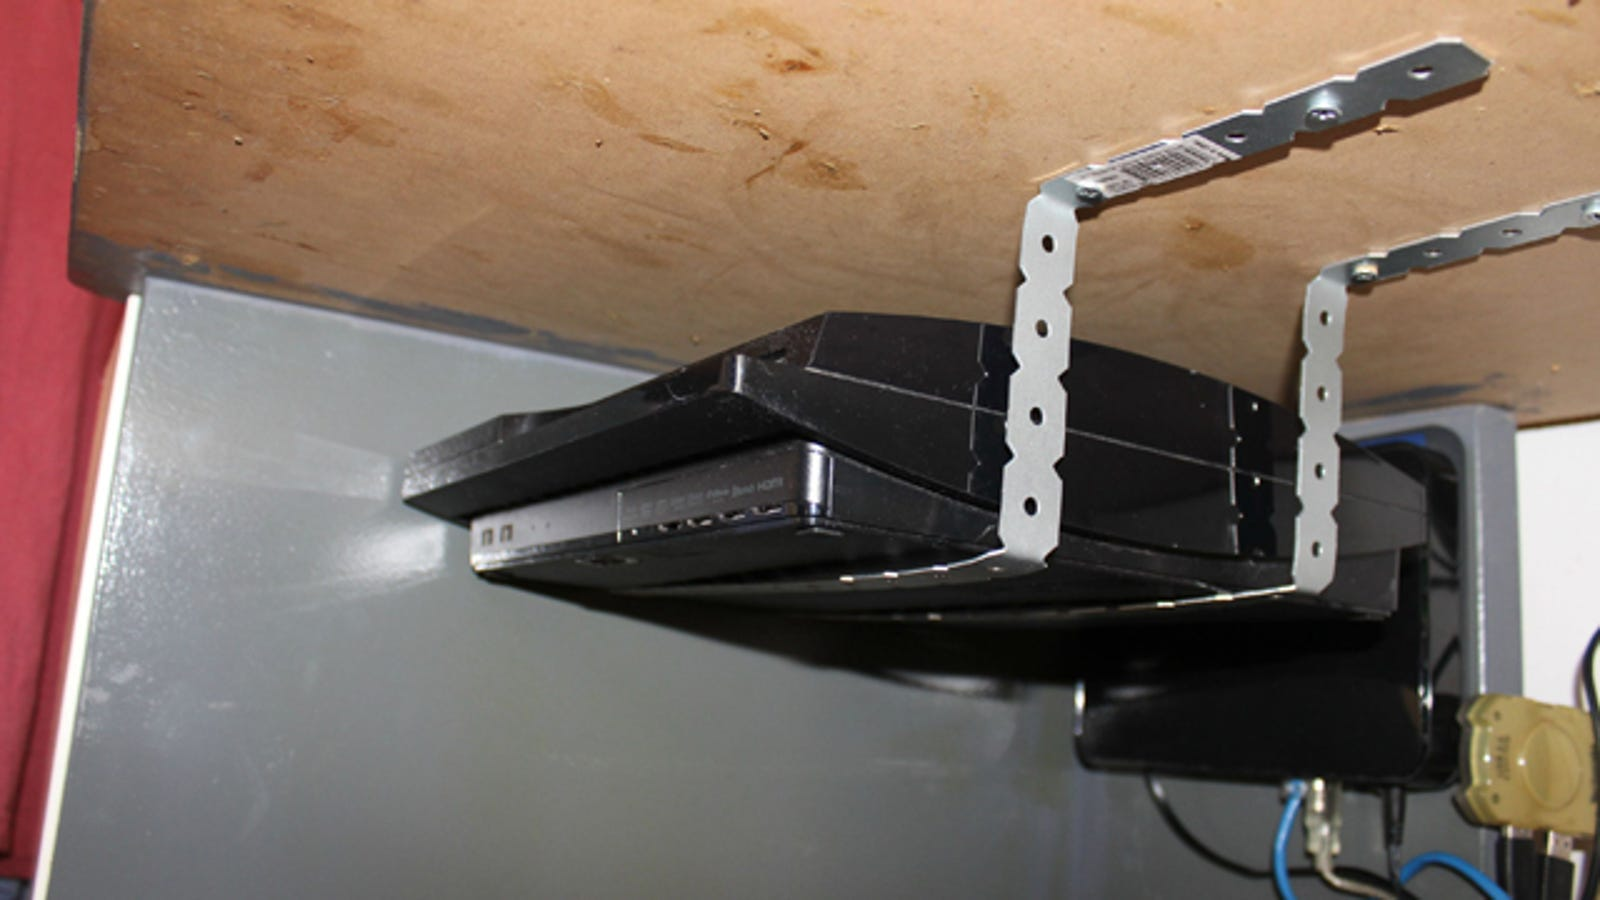 Mount Anything Under Your Desk With 4 Brackets